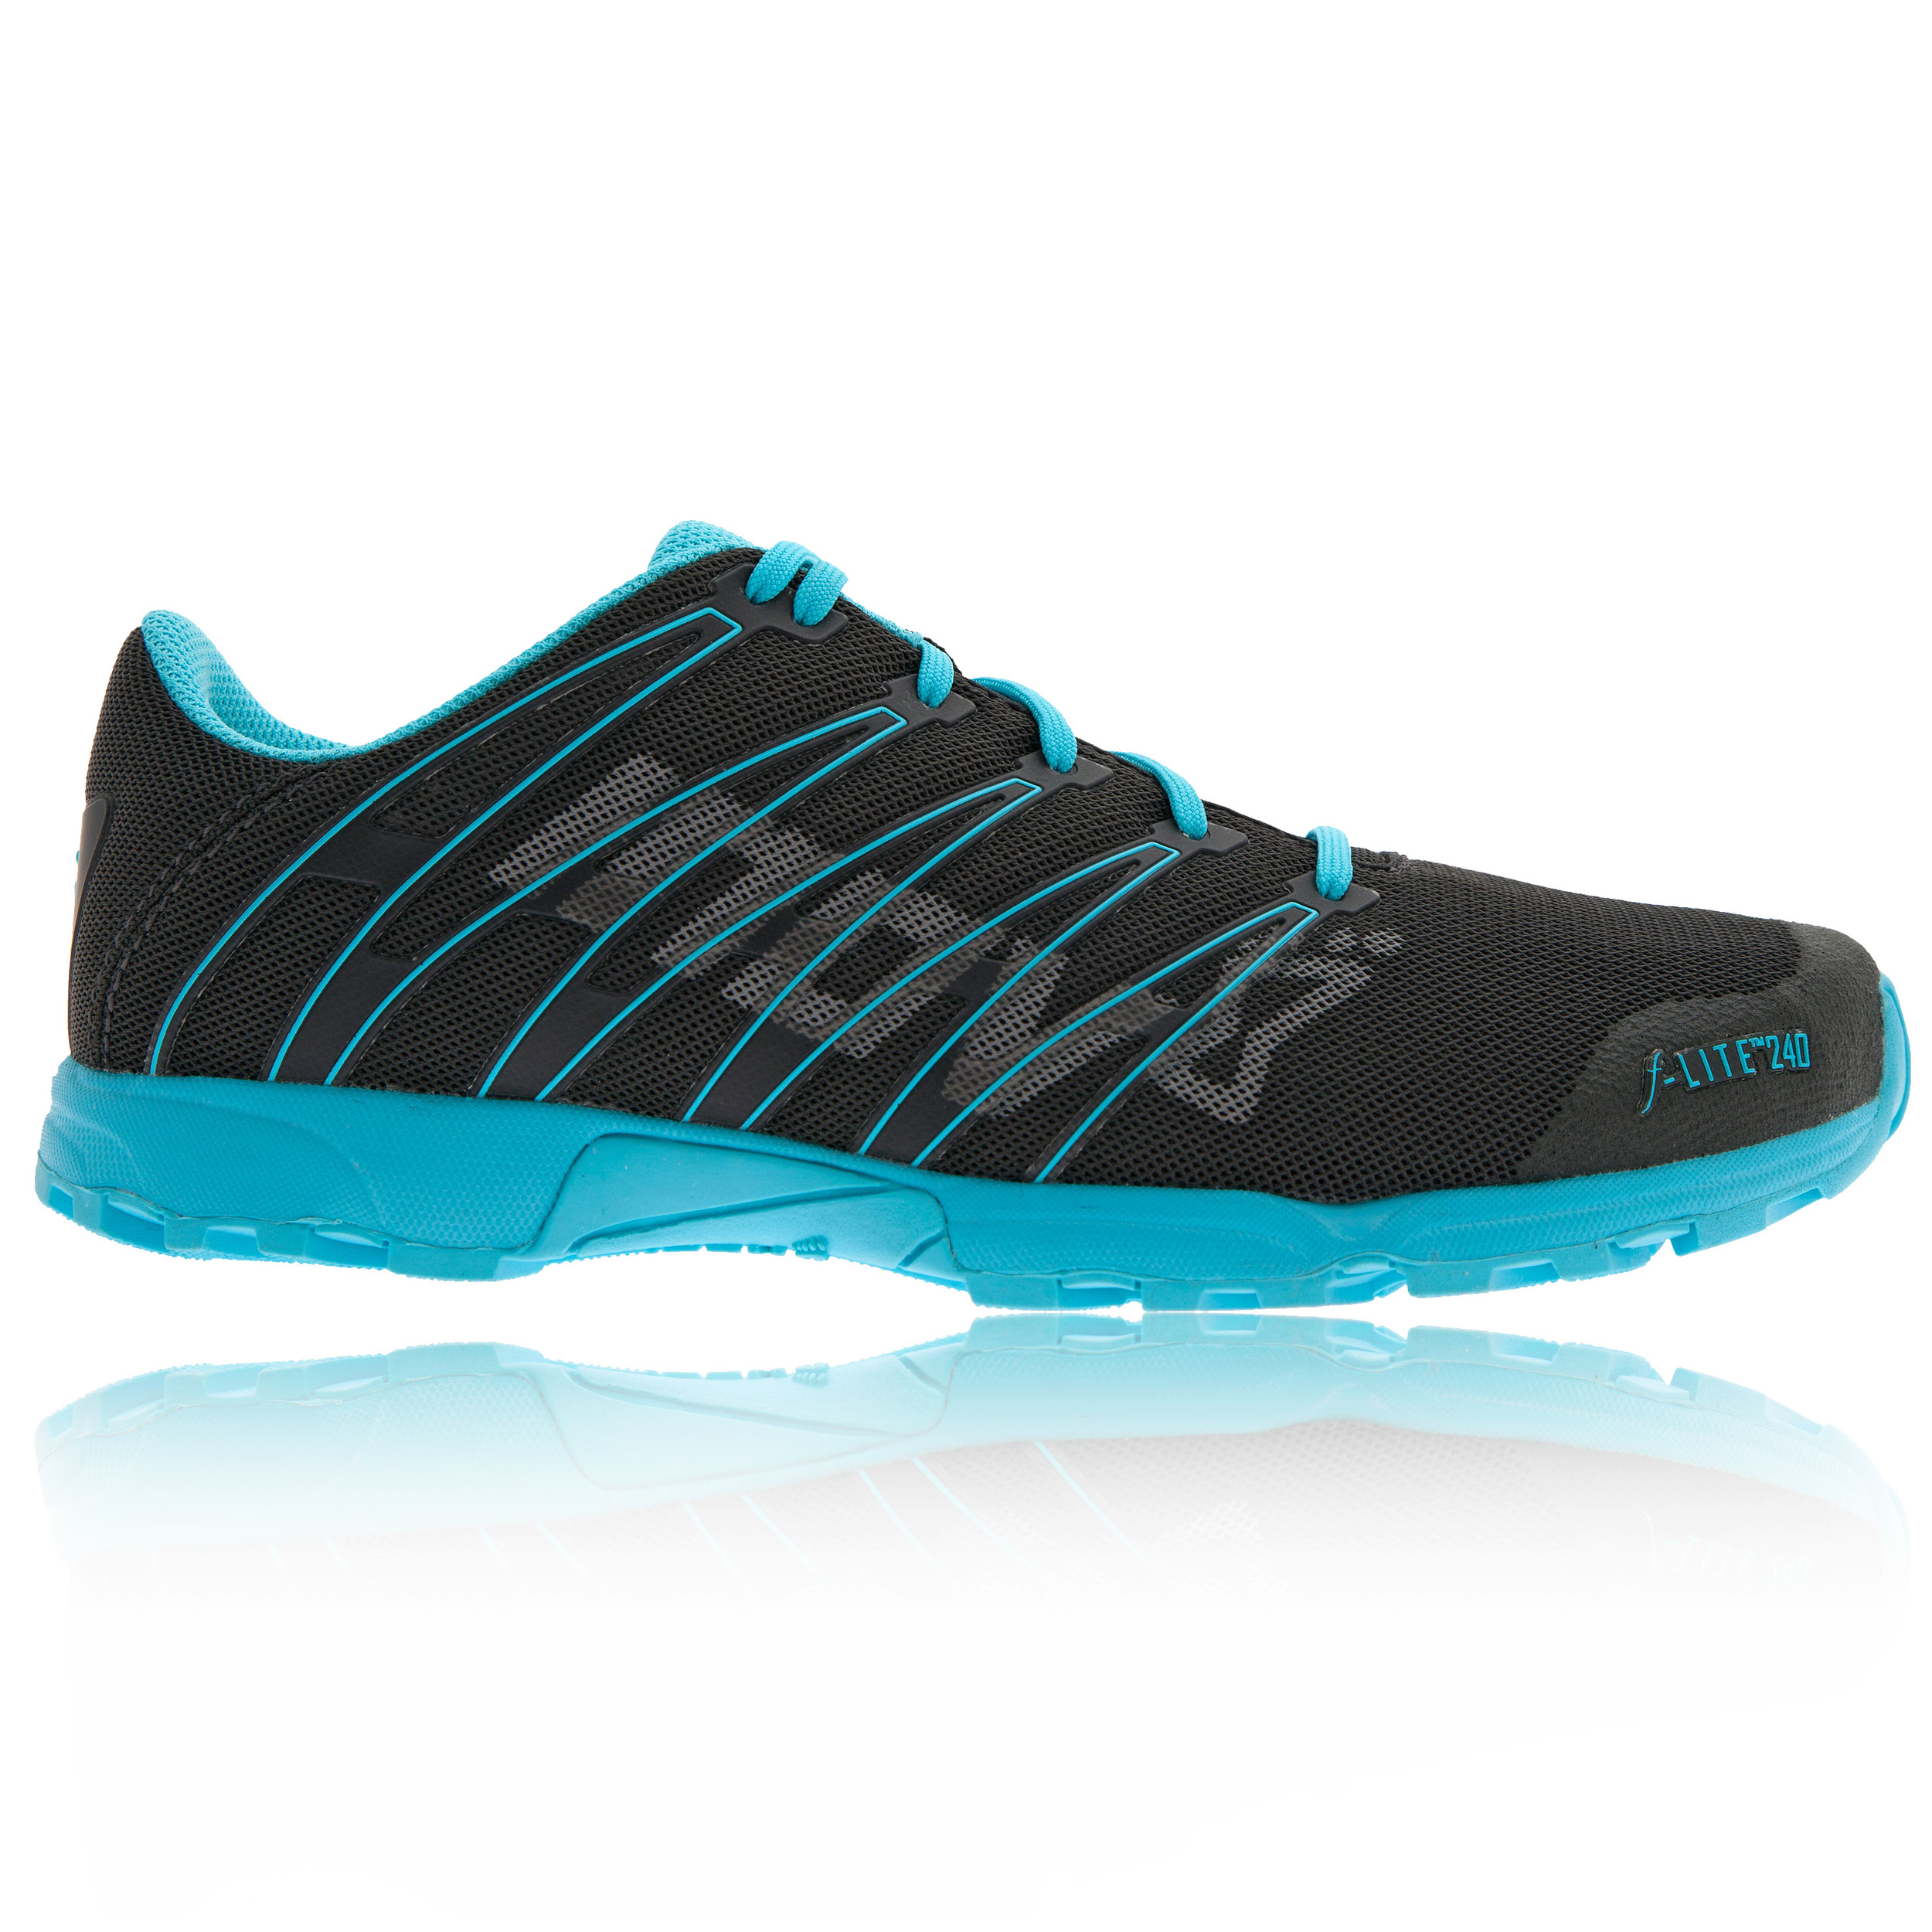 Crossfit Nano Shoes Good For Running